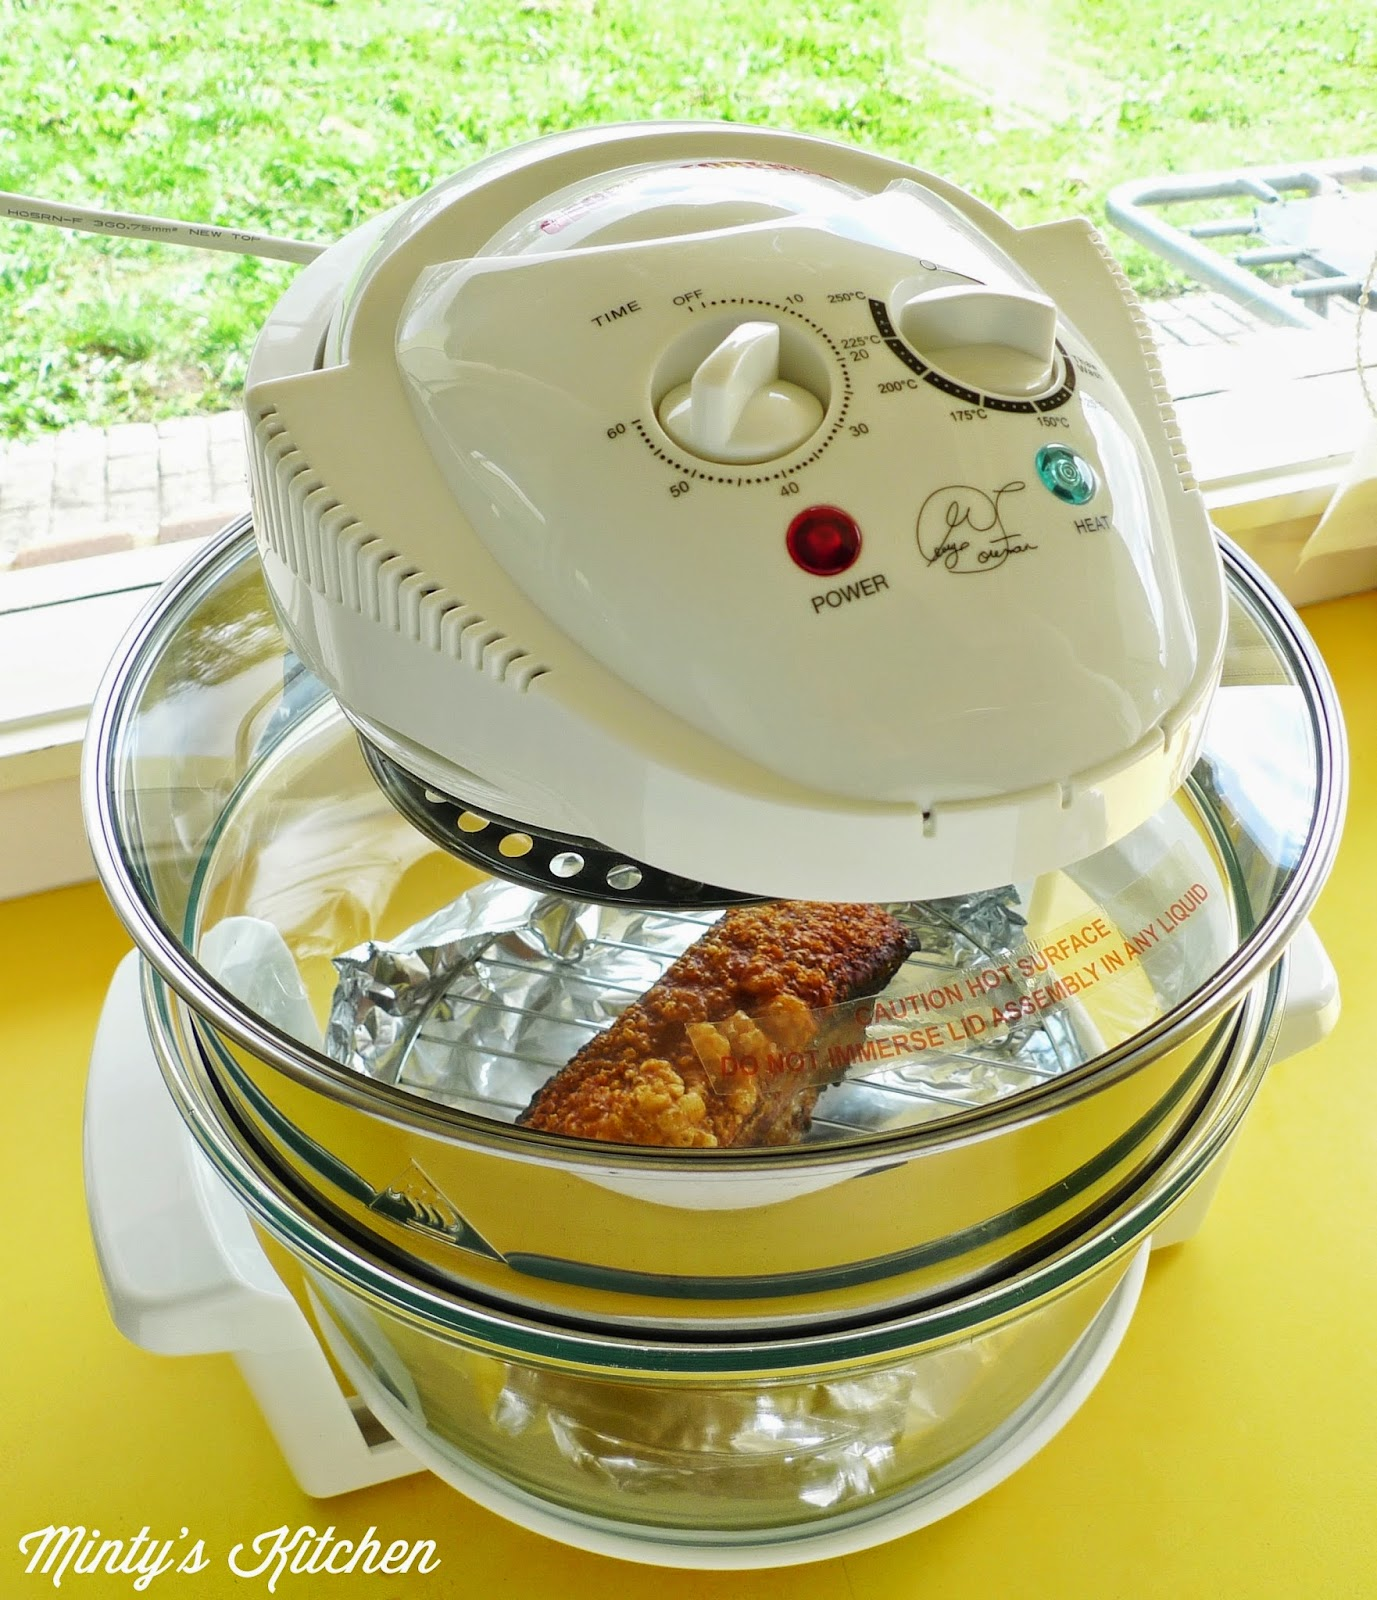 George Foreman Turbo Oven